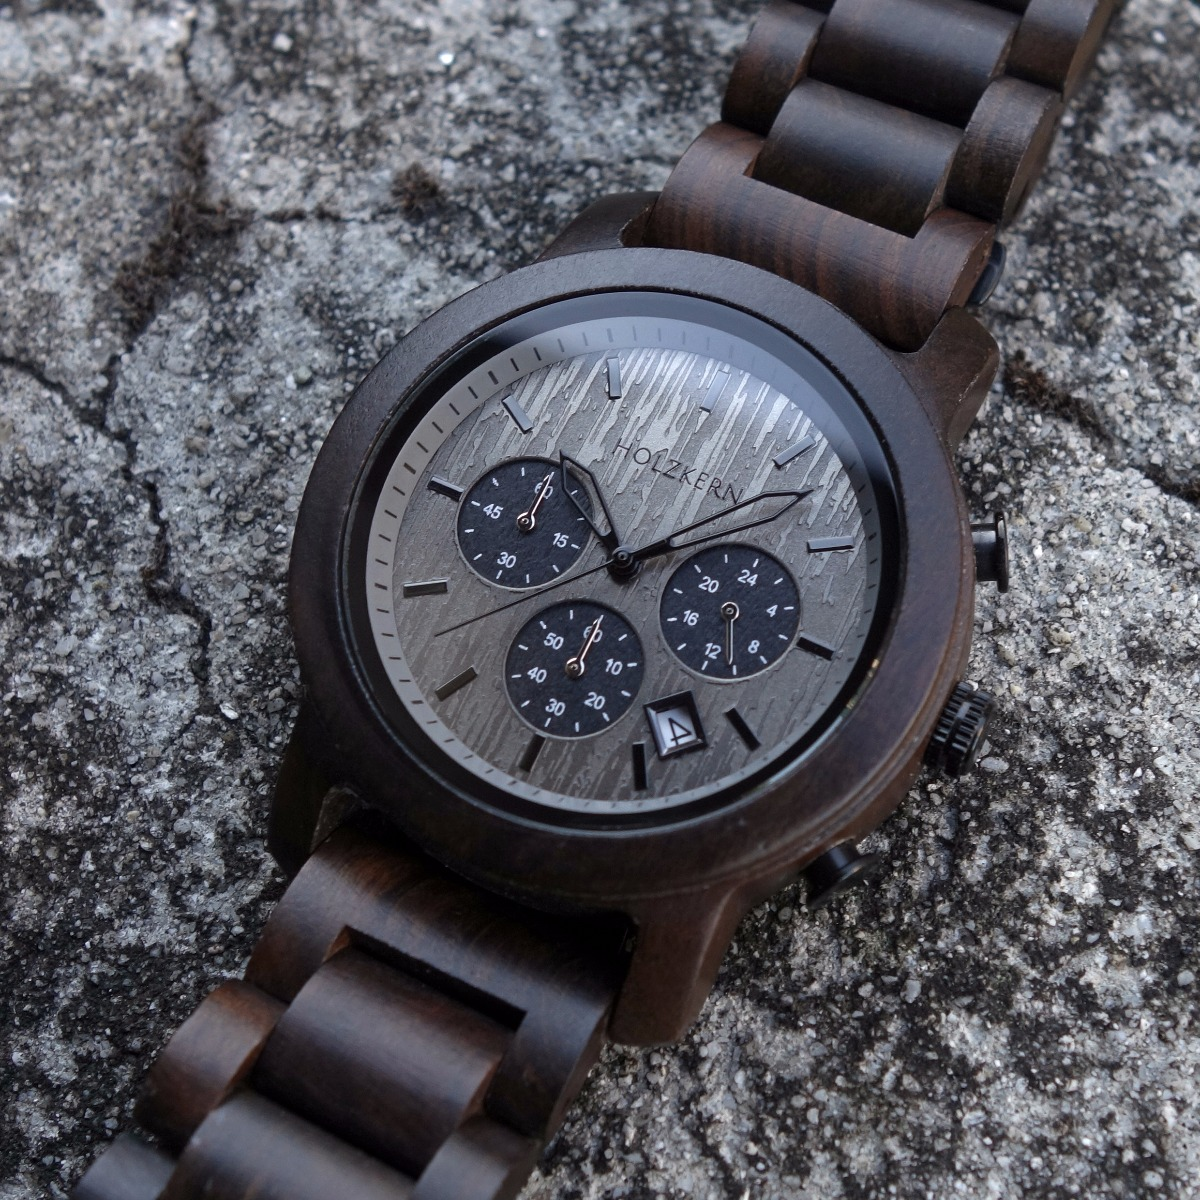 Northwall is a wooden chronograph for men